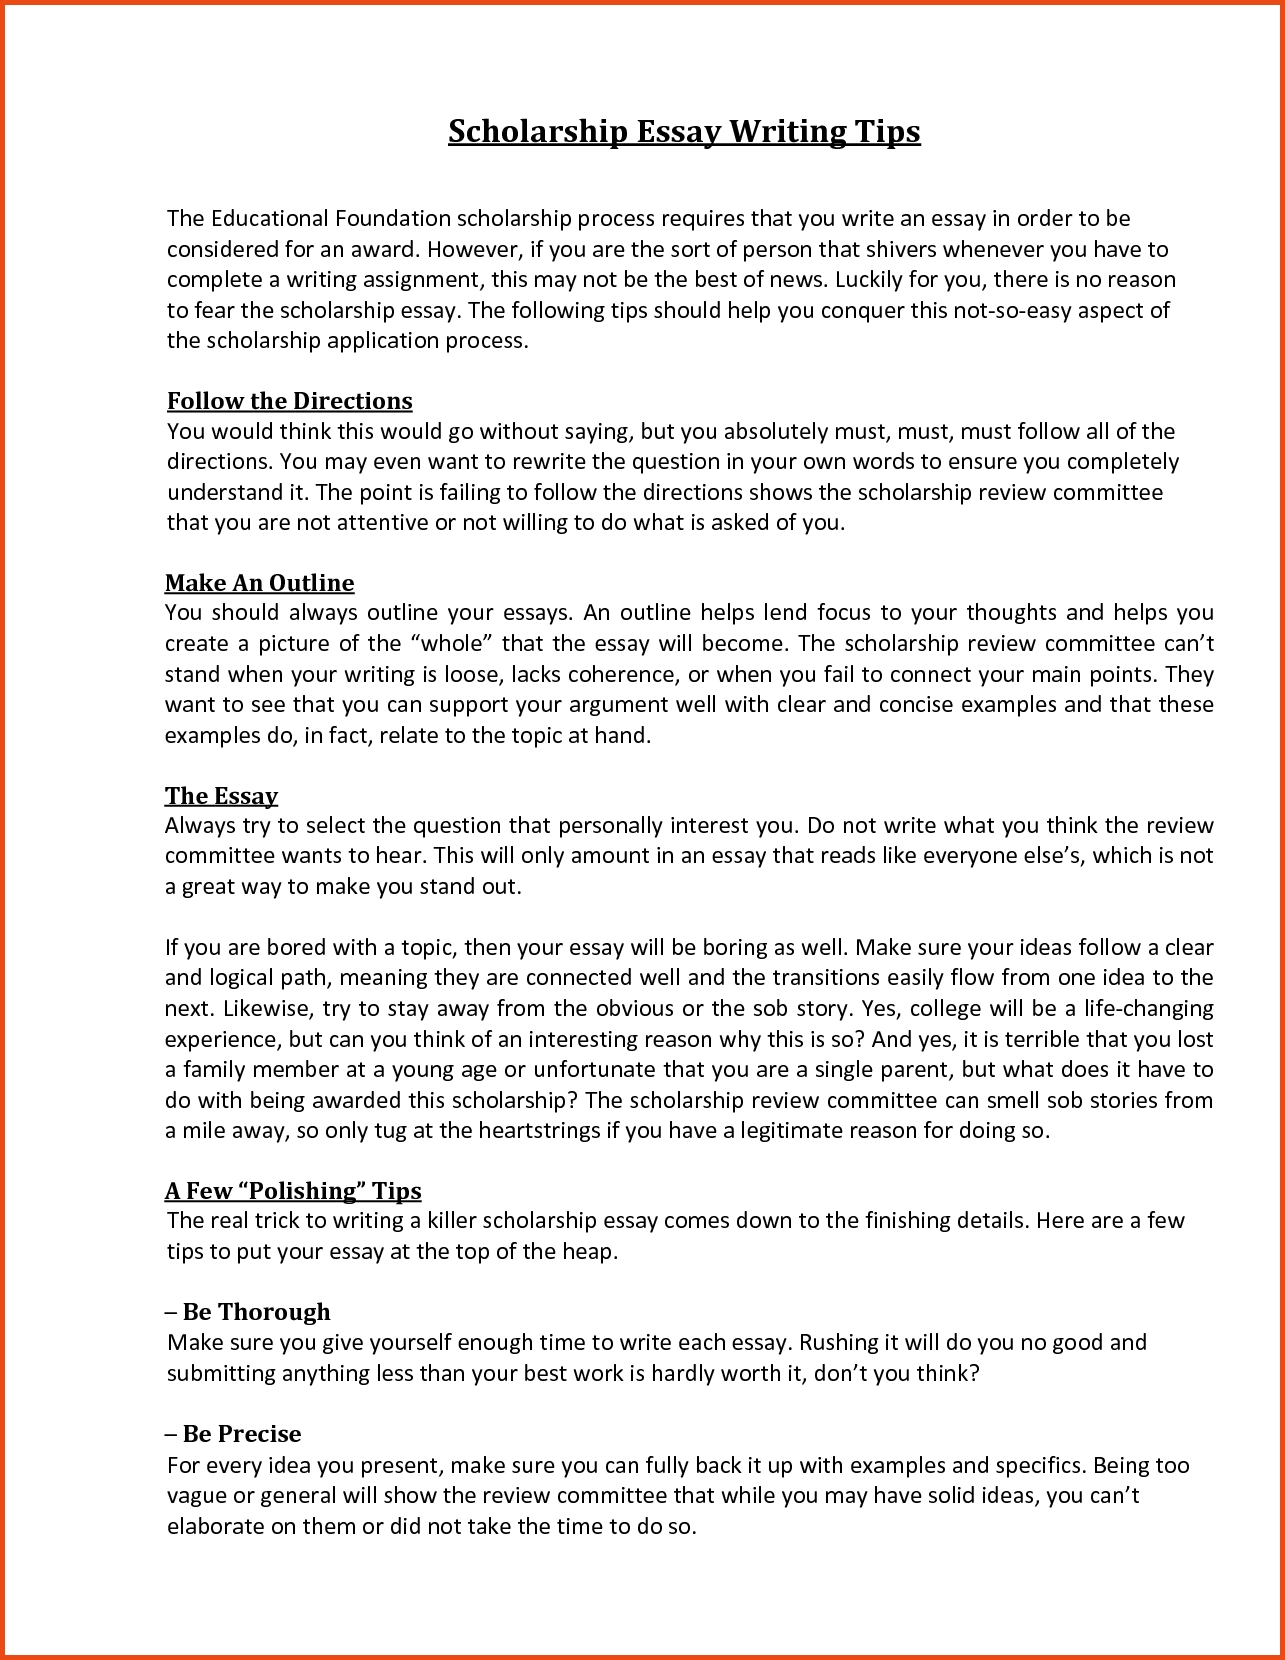 003 Scholarship Essay Format Sample With Regard To Sensational College Essays For Writing Full